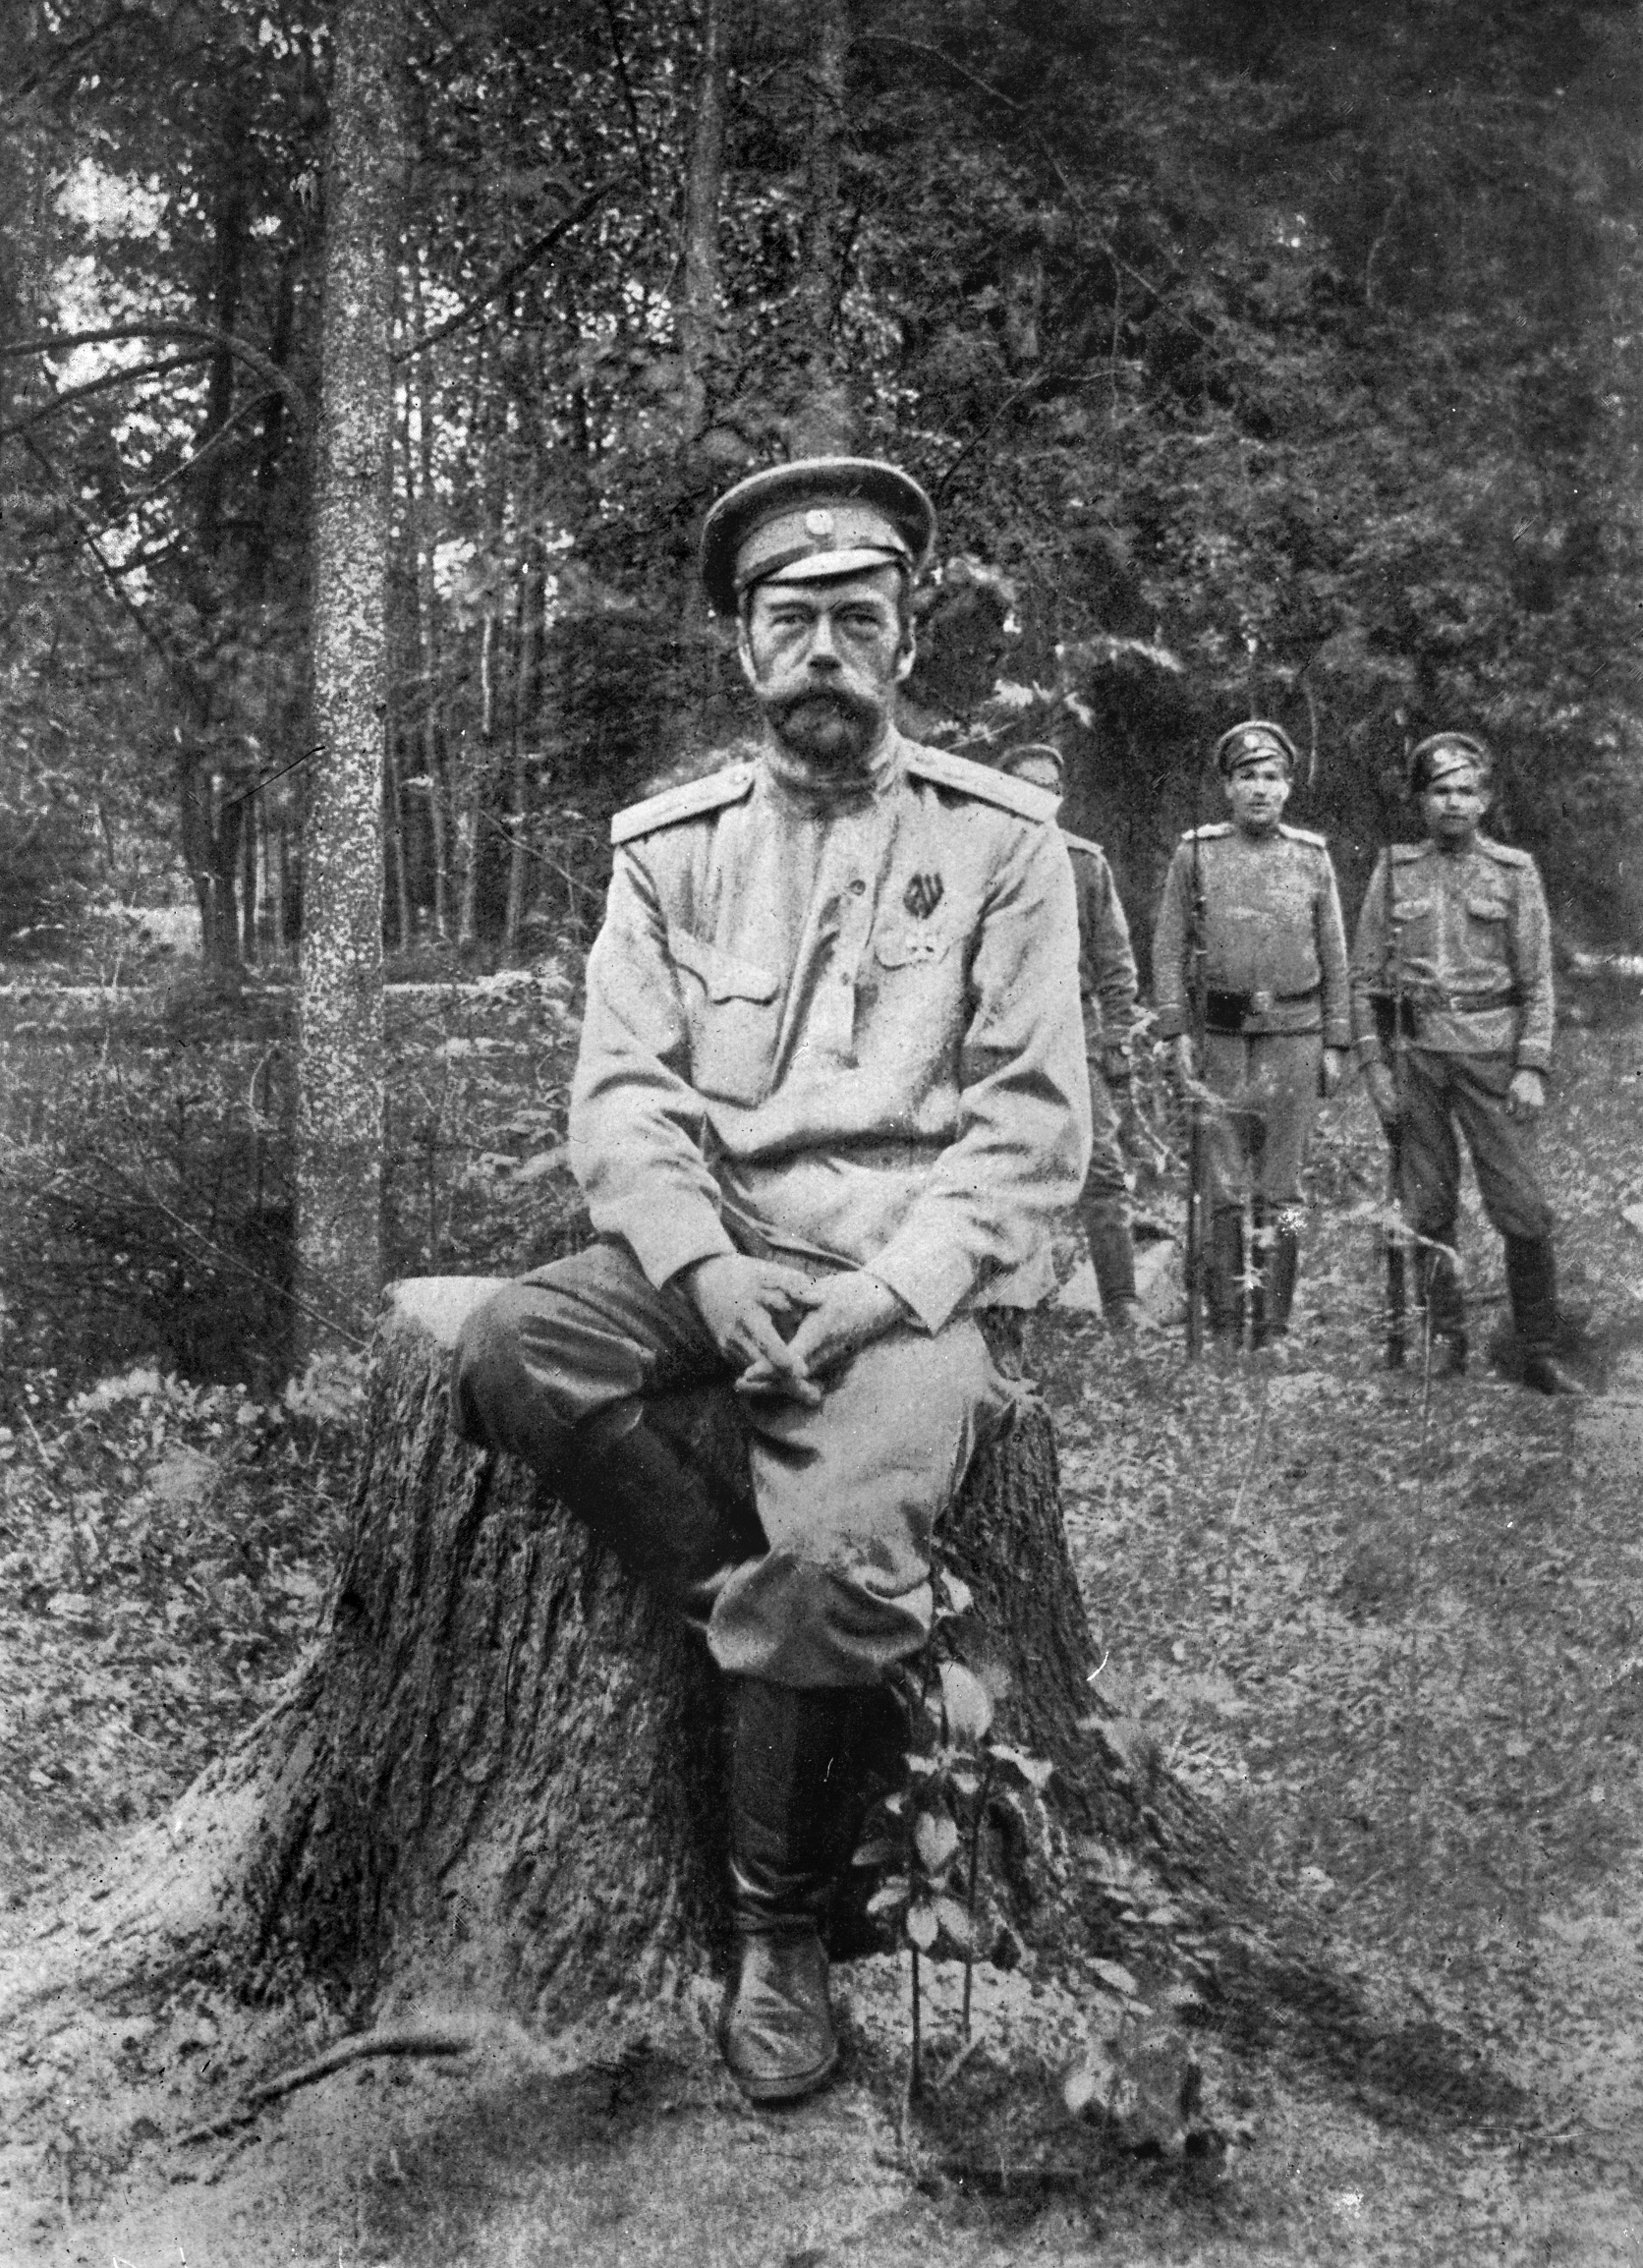 His Imperial Majesty Nicholas II of Russia